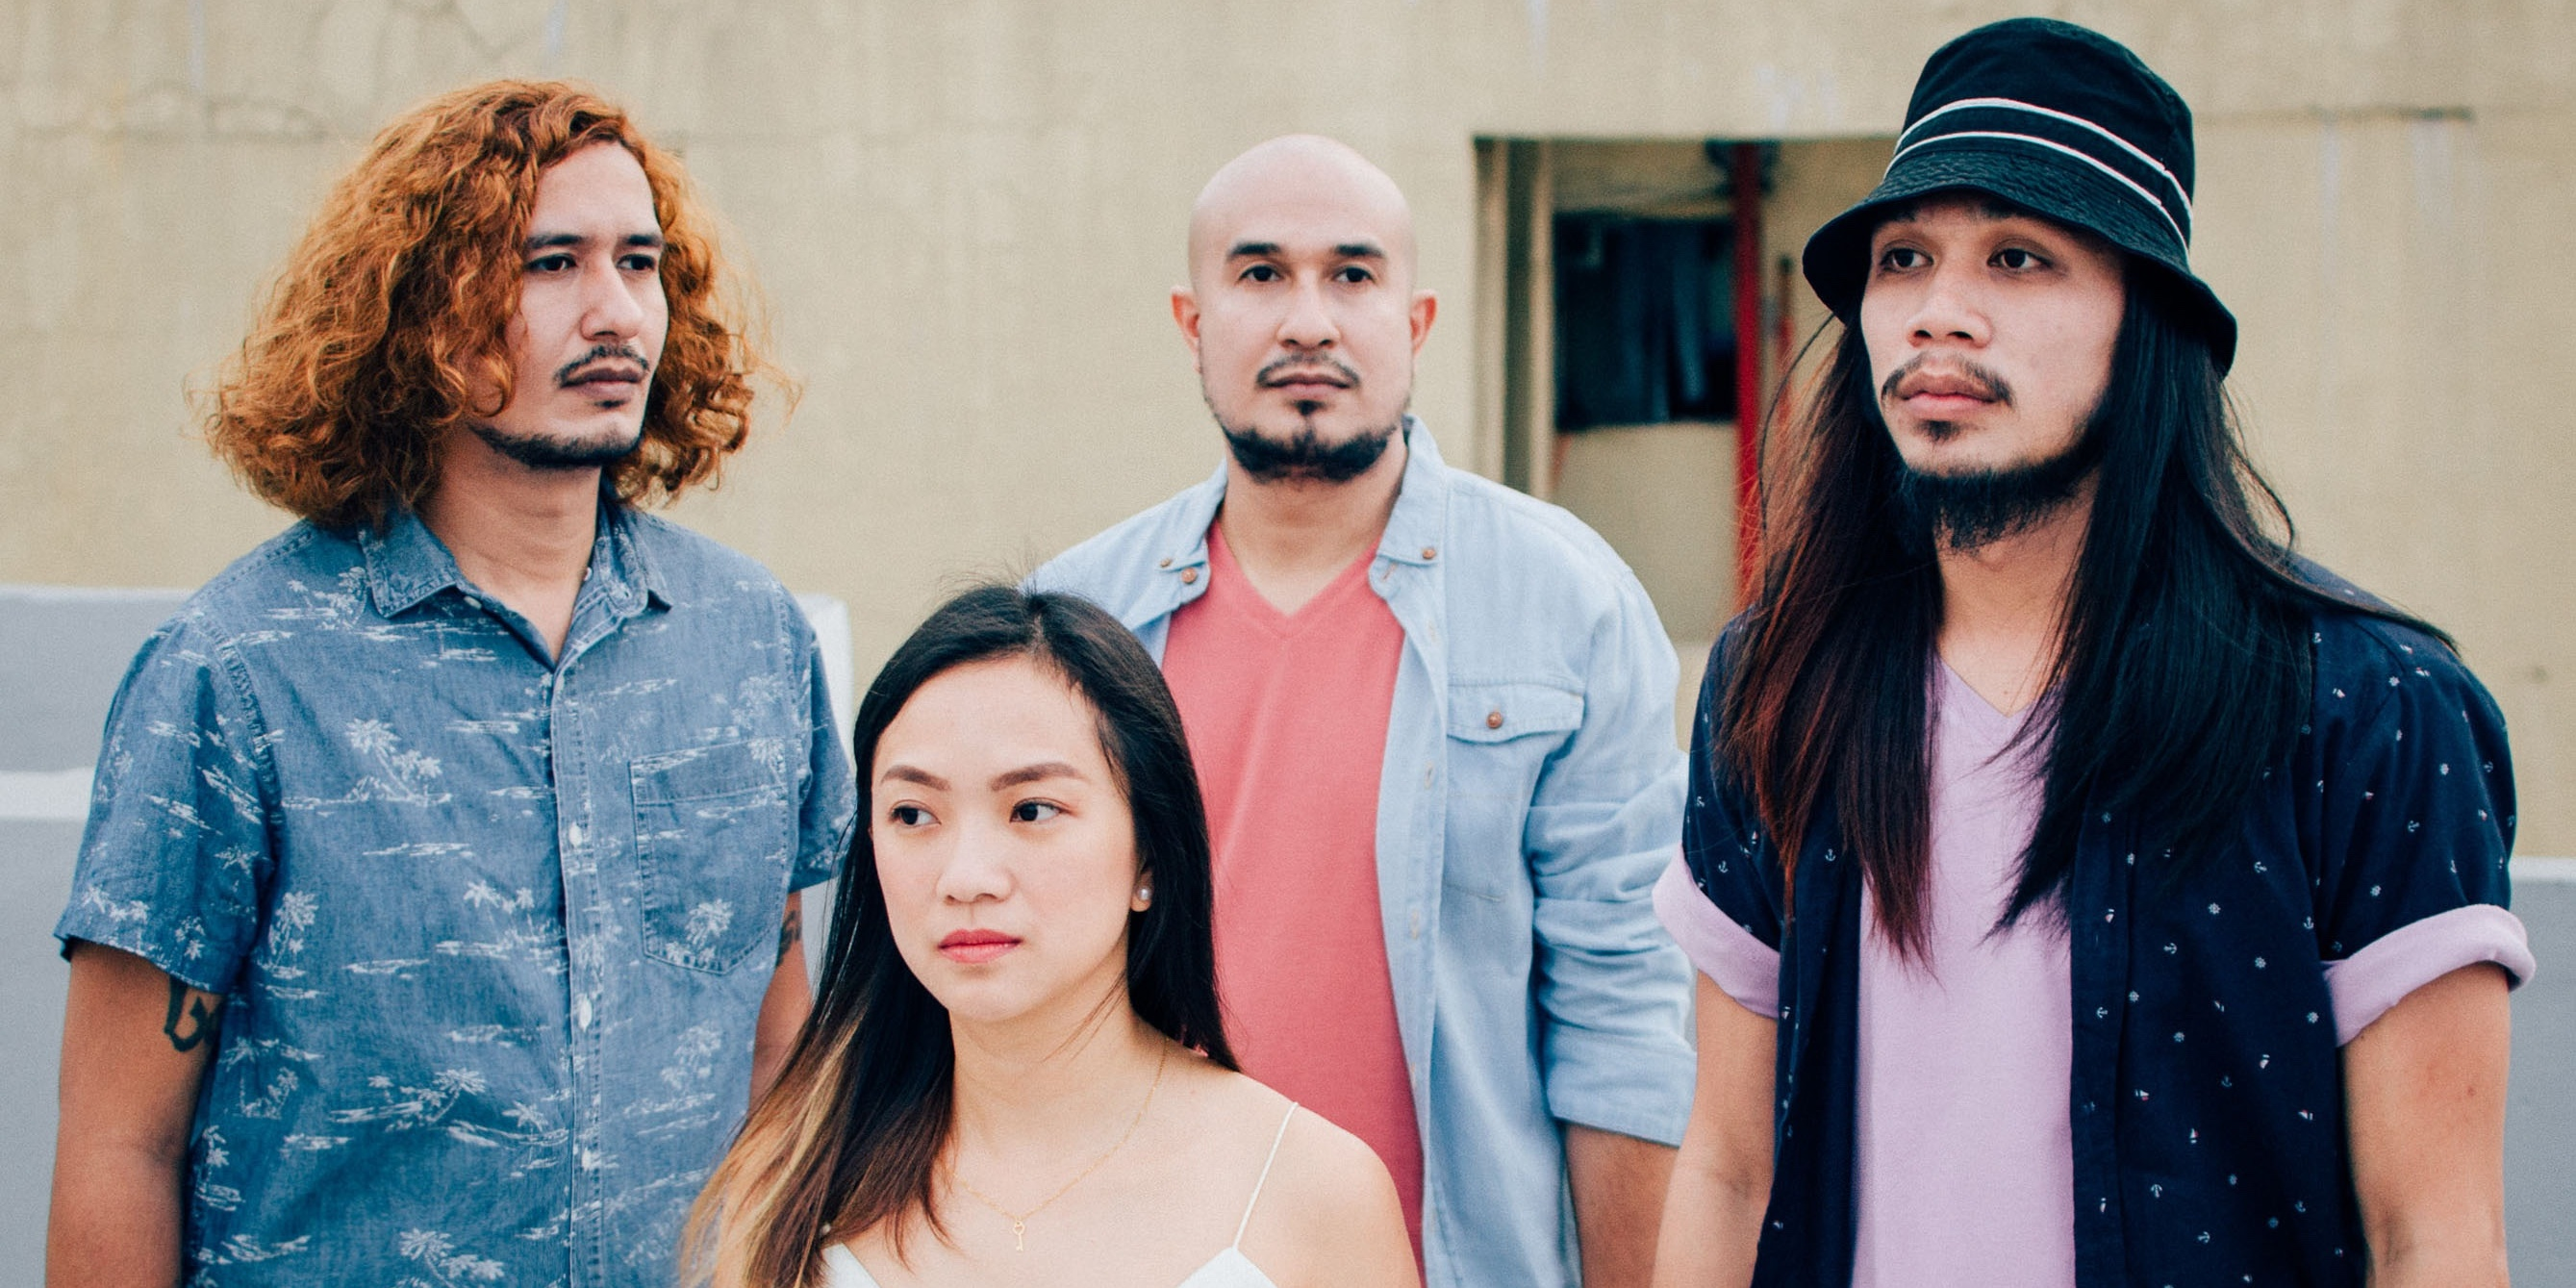 Indie rock outfit We Are Imaginary to make their Singapore debut at Esplanade's Rockin' the Region Series